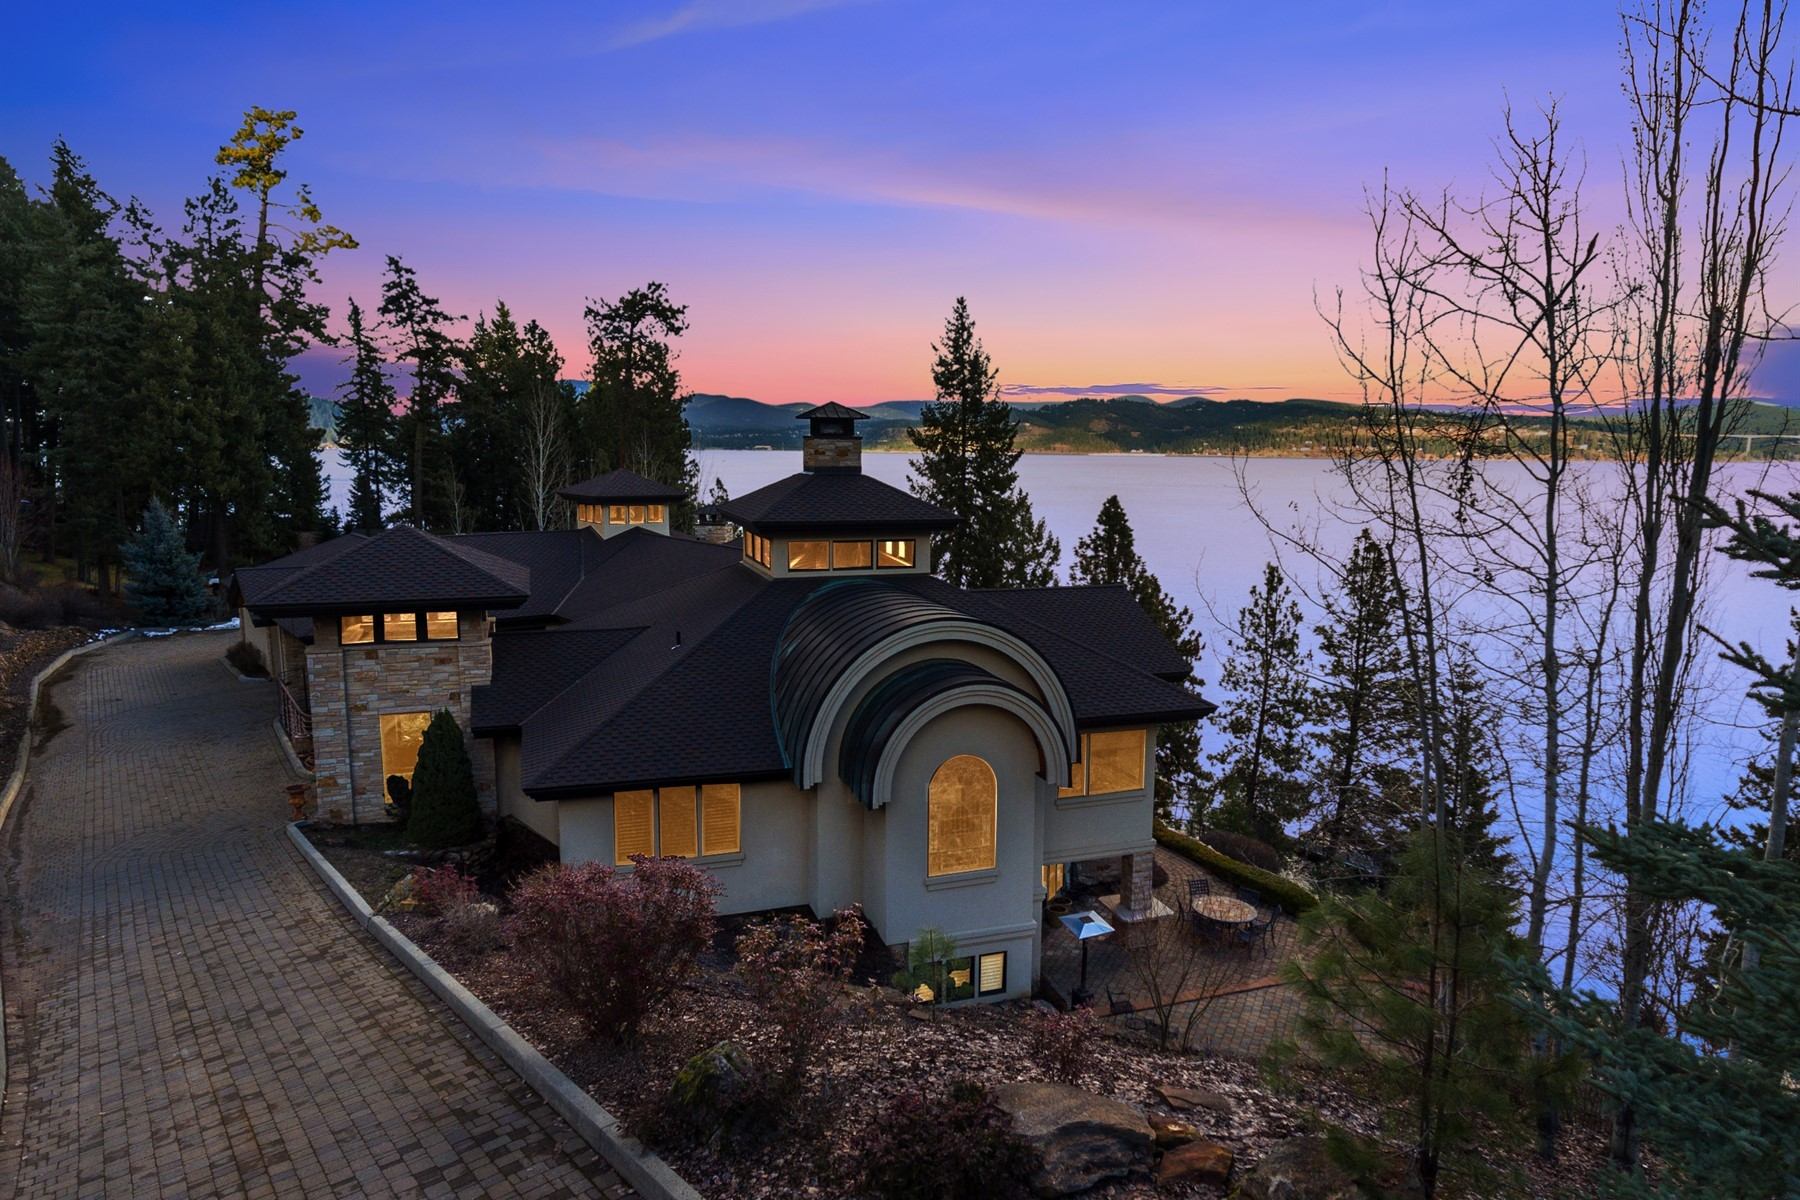 Single Family Homes for Active at Magical Simple Lake Elegance 4200 S Threemile Point Rd Coeur D Alene, Idaho 83814 United States